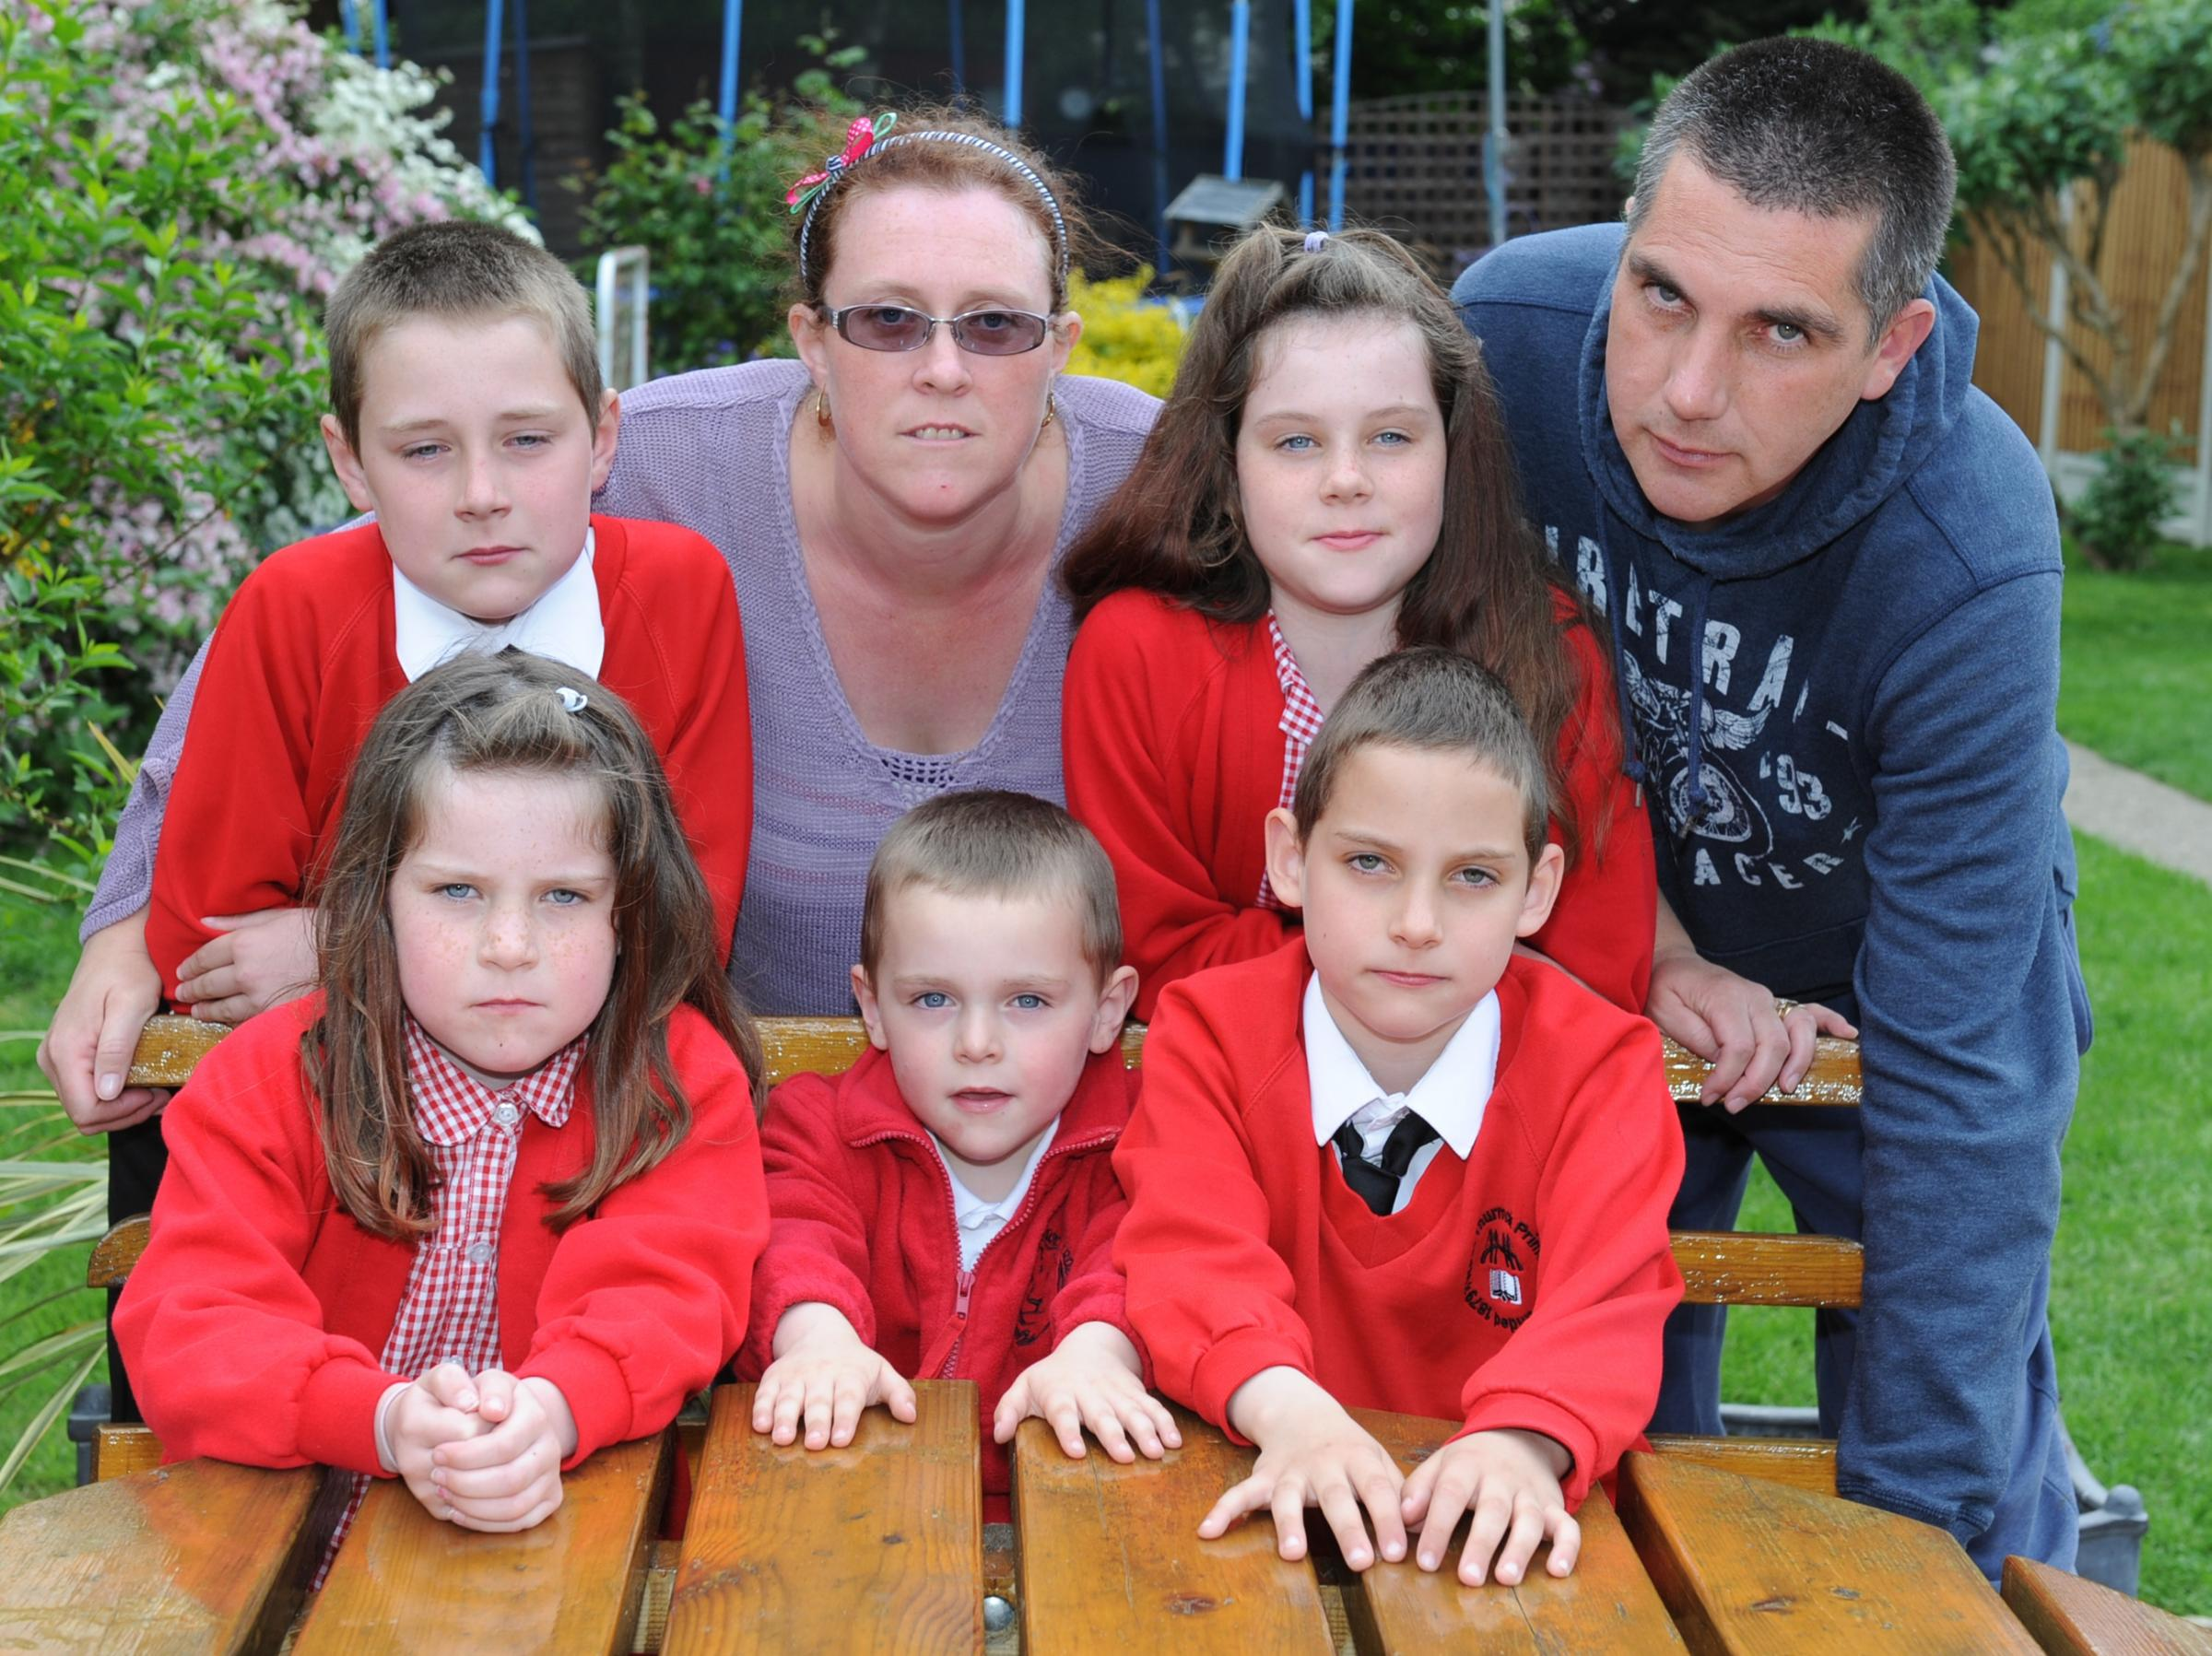 Vanessa Simmonds with son Harrison 4 who can't go to same school as brothers and sisters. 7 Moore ave, Grays PIC- back row l-r Ryan 10, mum Vanessa, Bethany 9, dad Dave, front Emma 6, Harrison 4 and Daniel 9